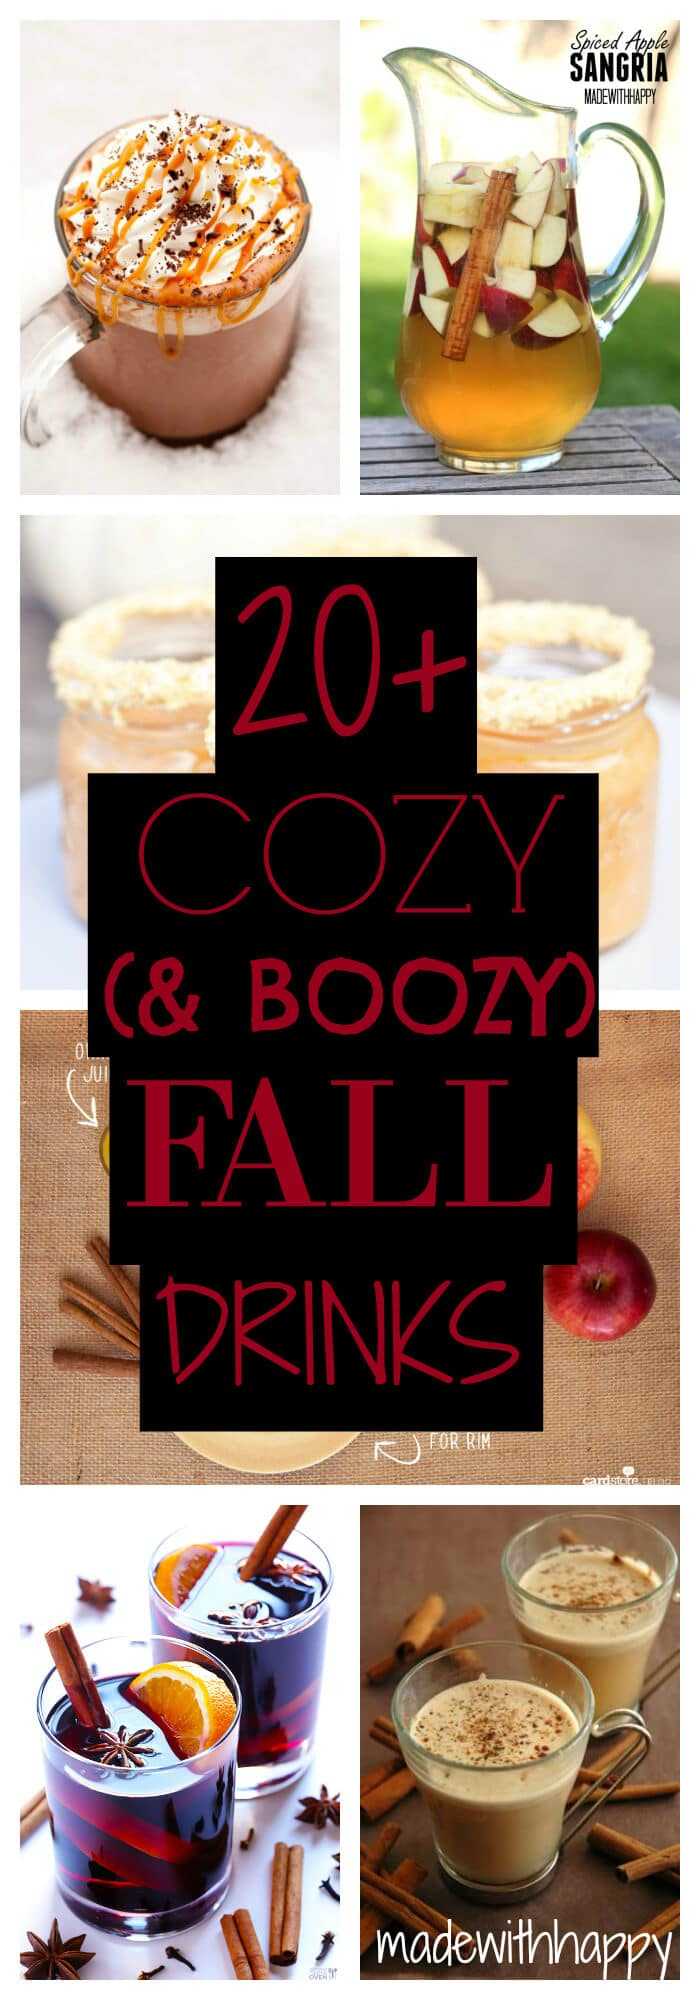 20+ Fall Cocktail Recipes | Holiday Entertaining with Fall Recipes | Pumpkin, apple and cinnamon cocktails | www.madewithHAPPY.com